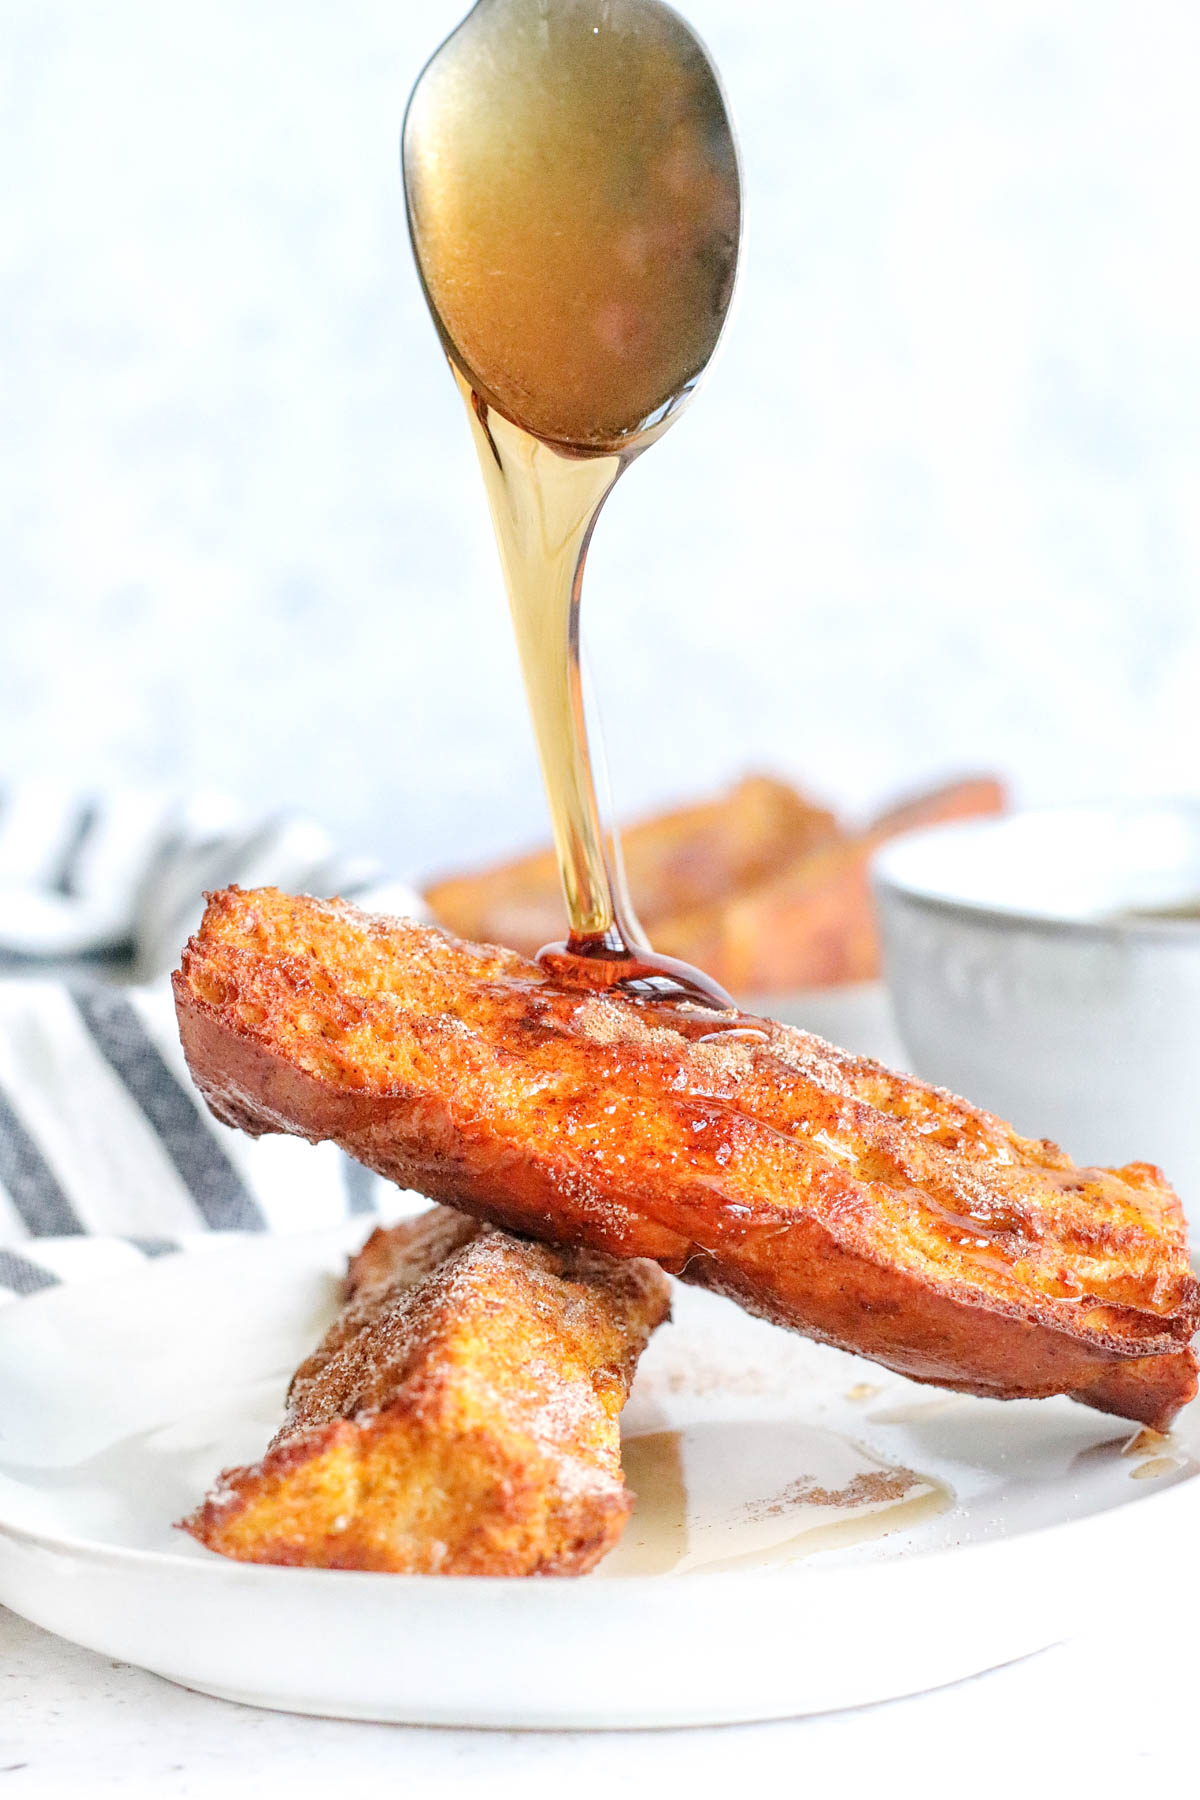 a spoon adding syrup to french toast sticks stacked on a plate